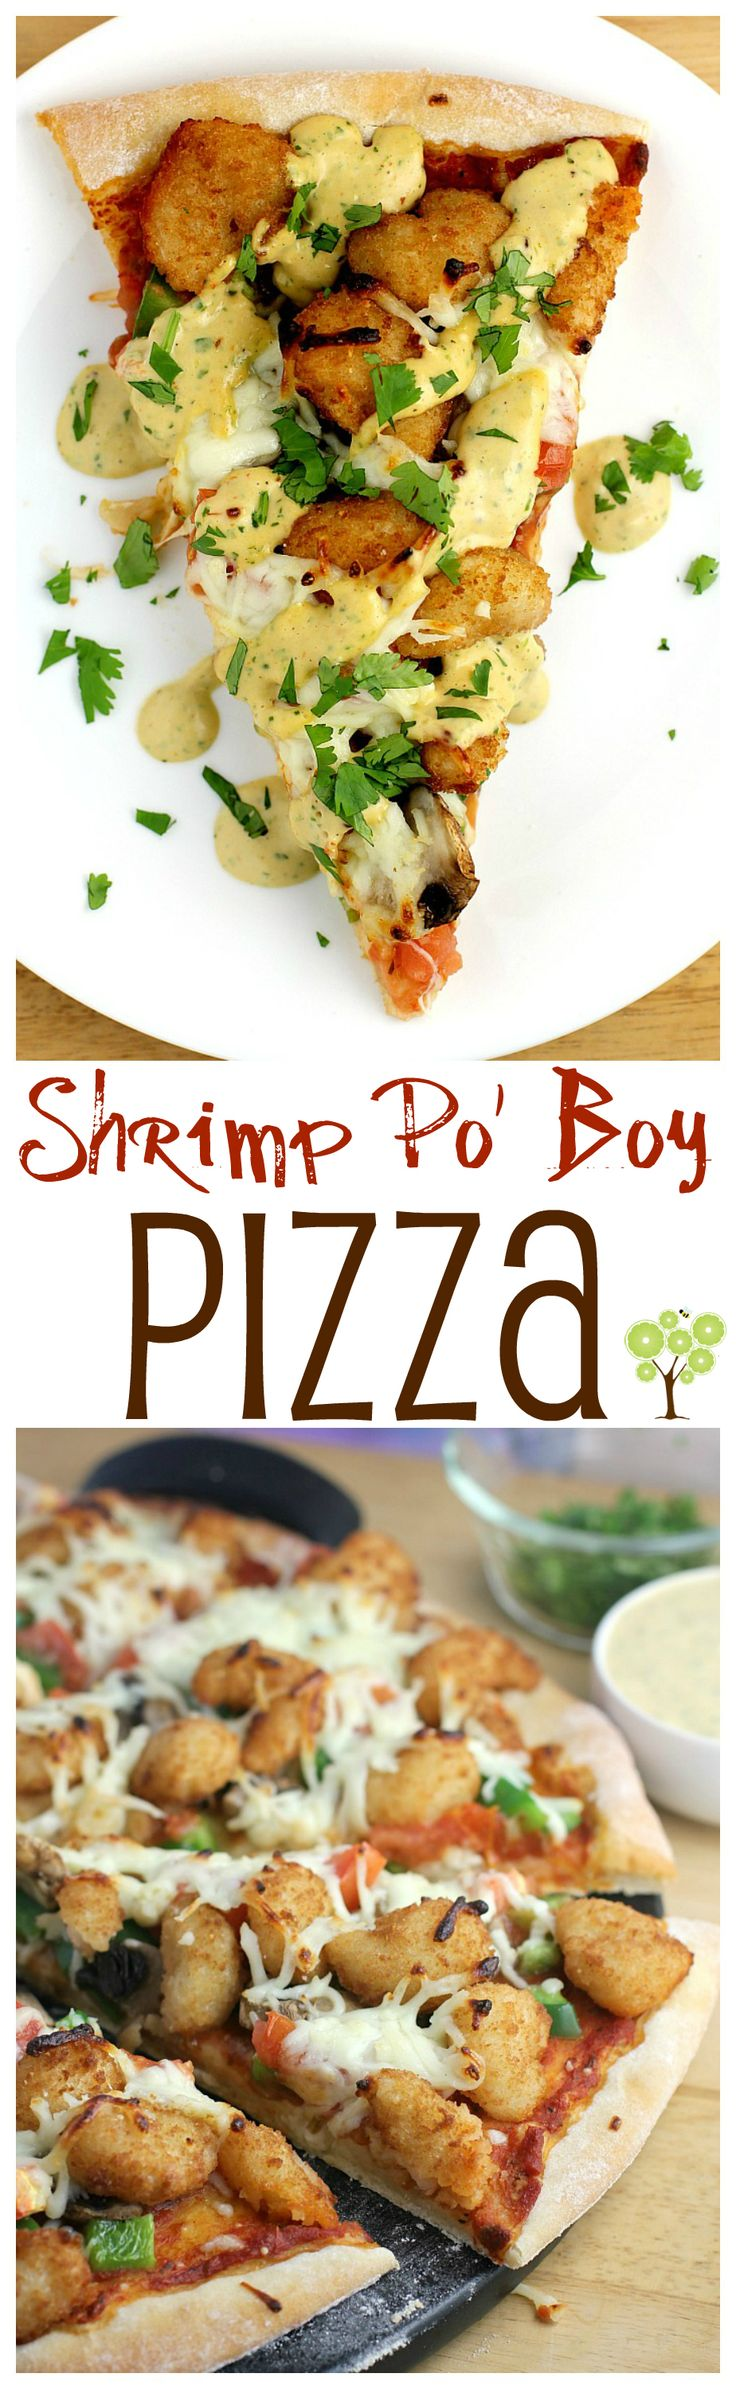 Shrimp Po' Boy Pizza from EricasRecipes.com #ad #ShrimpItUp